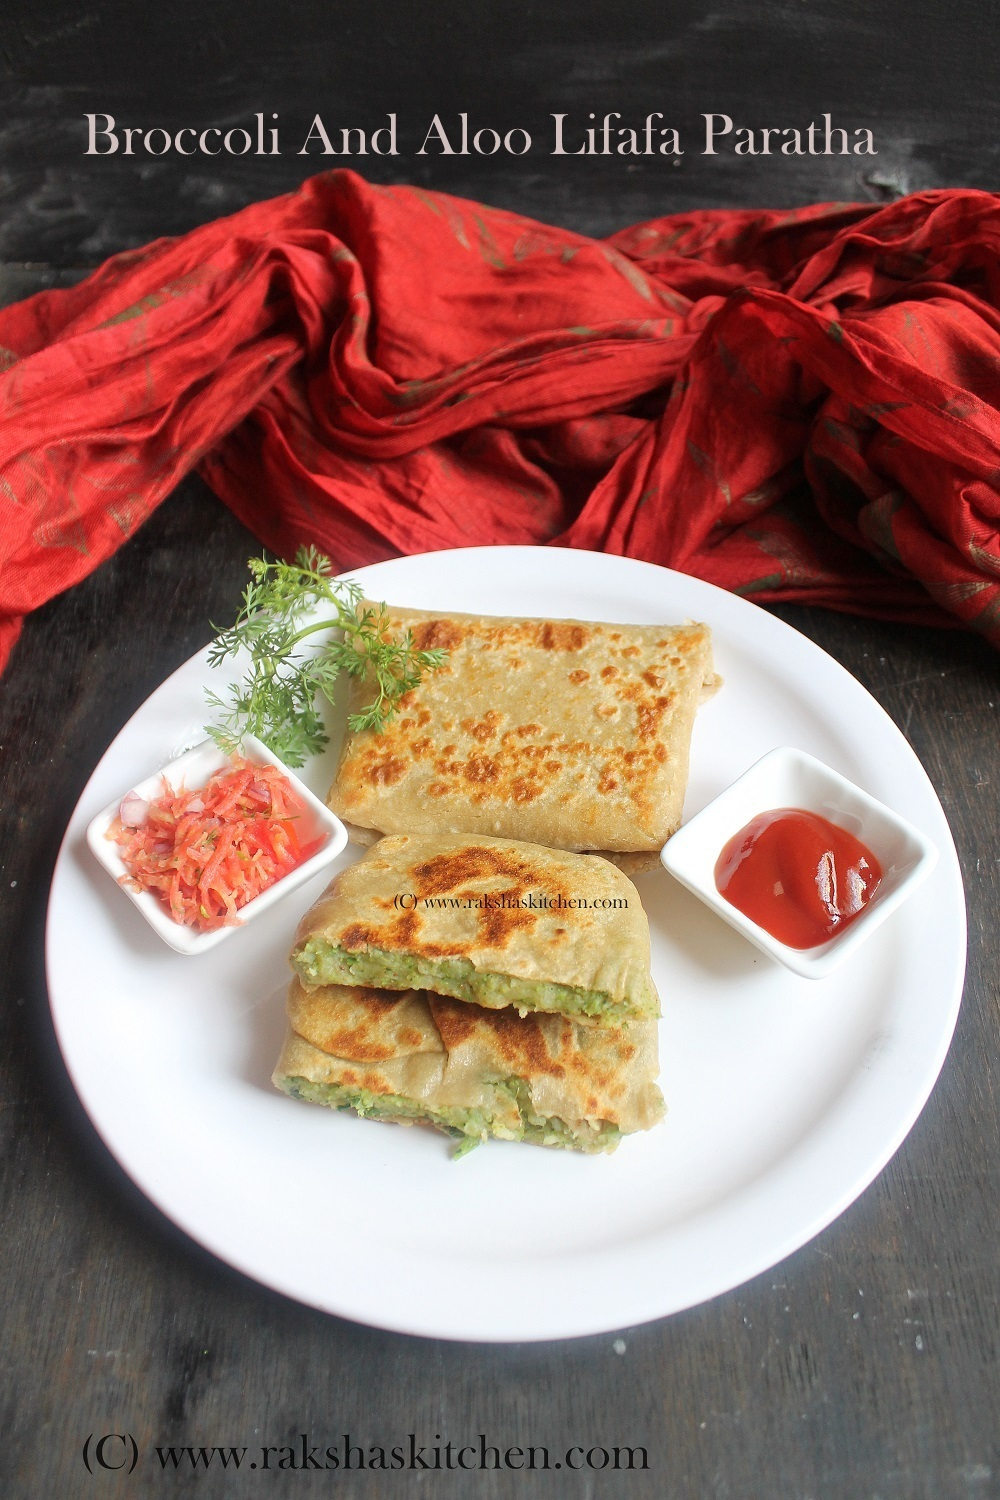 Broccoli And Aloo Lifafa Paratha